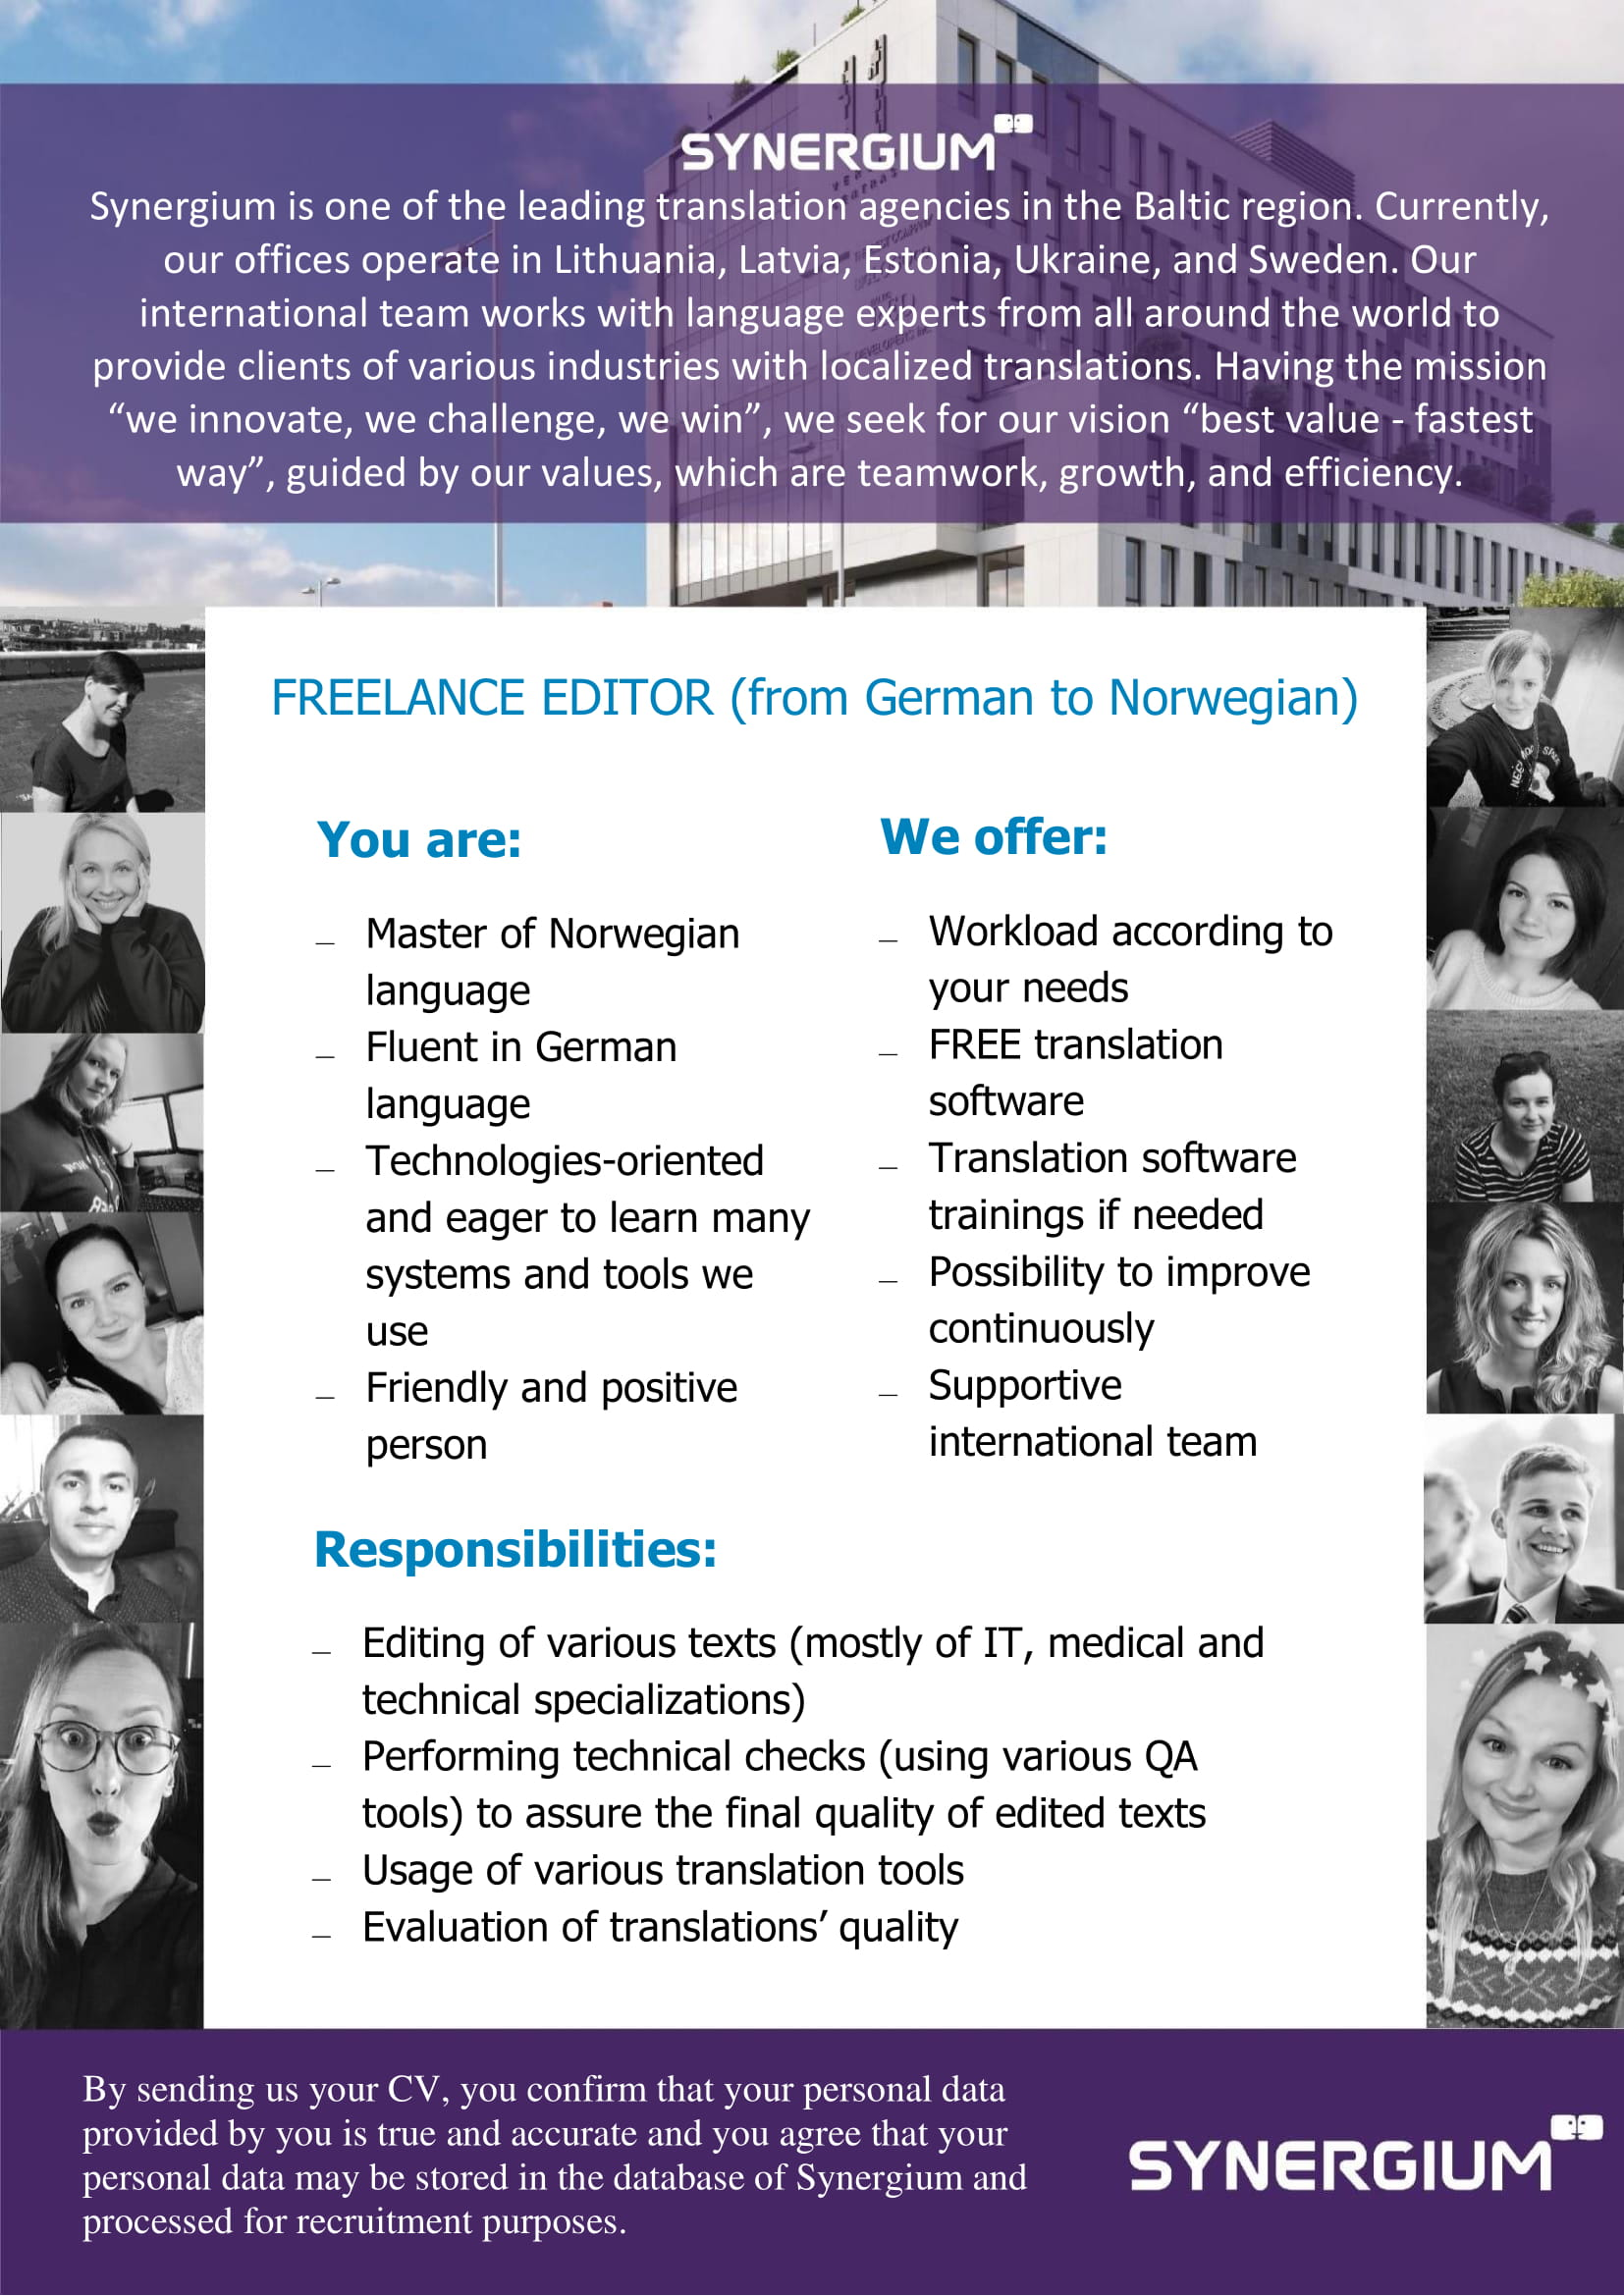 freelance editor from german to norwegian job advertisement synergium